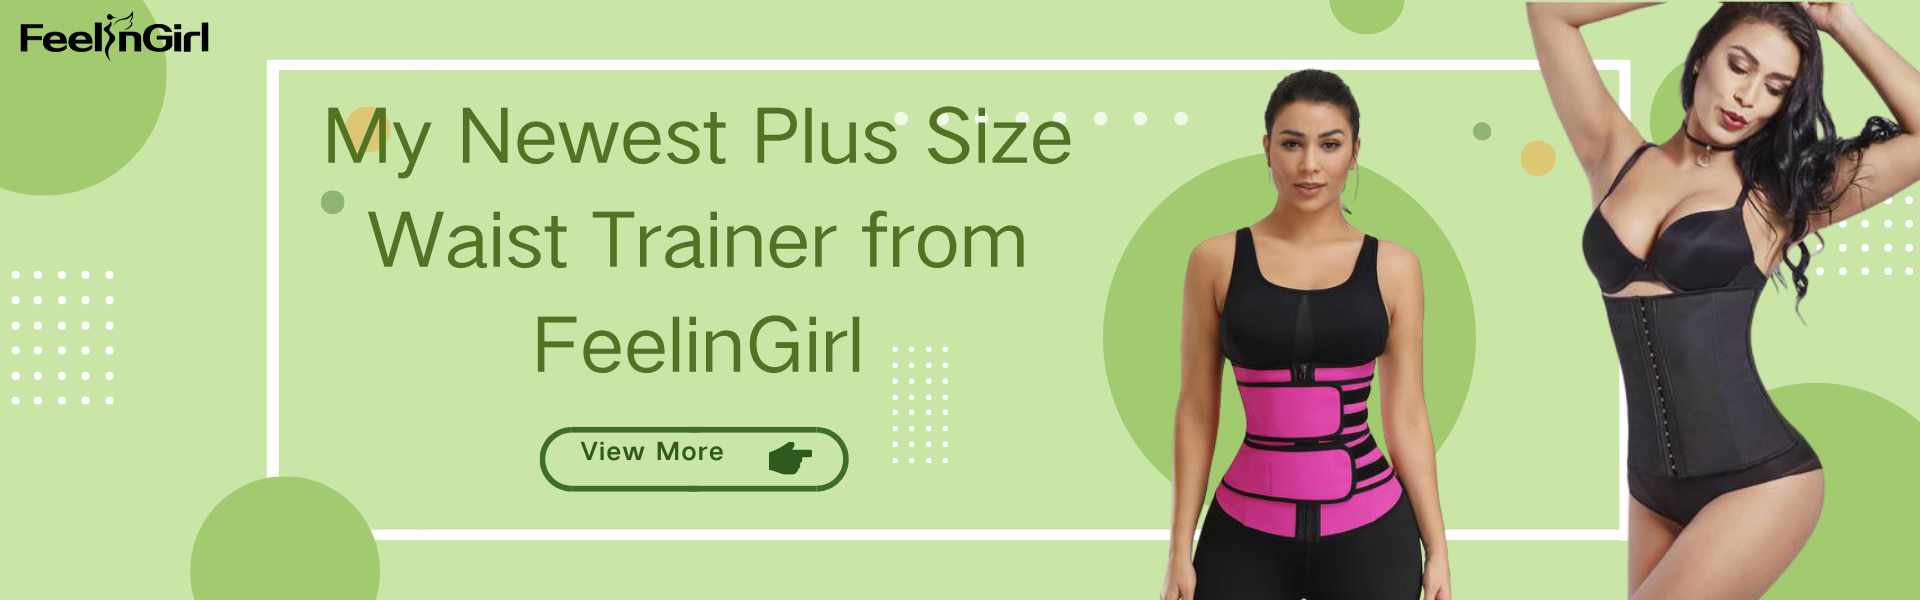 My Newest Plus Size Waist Trainer from FeelinGirl